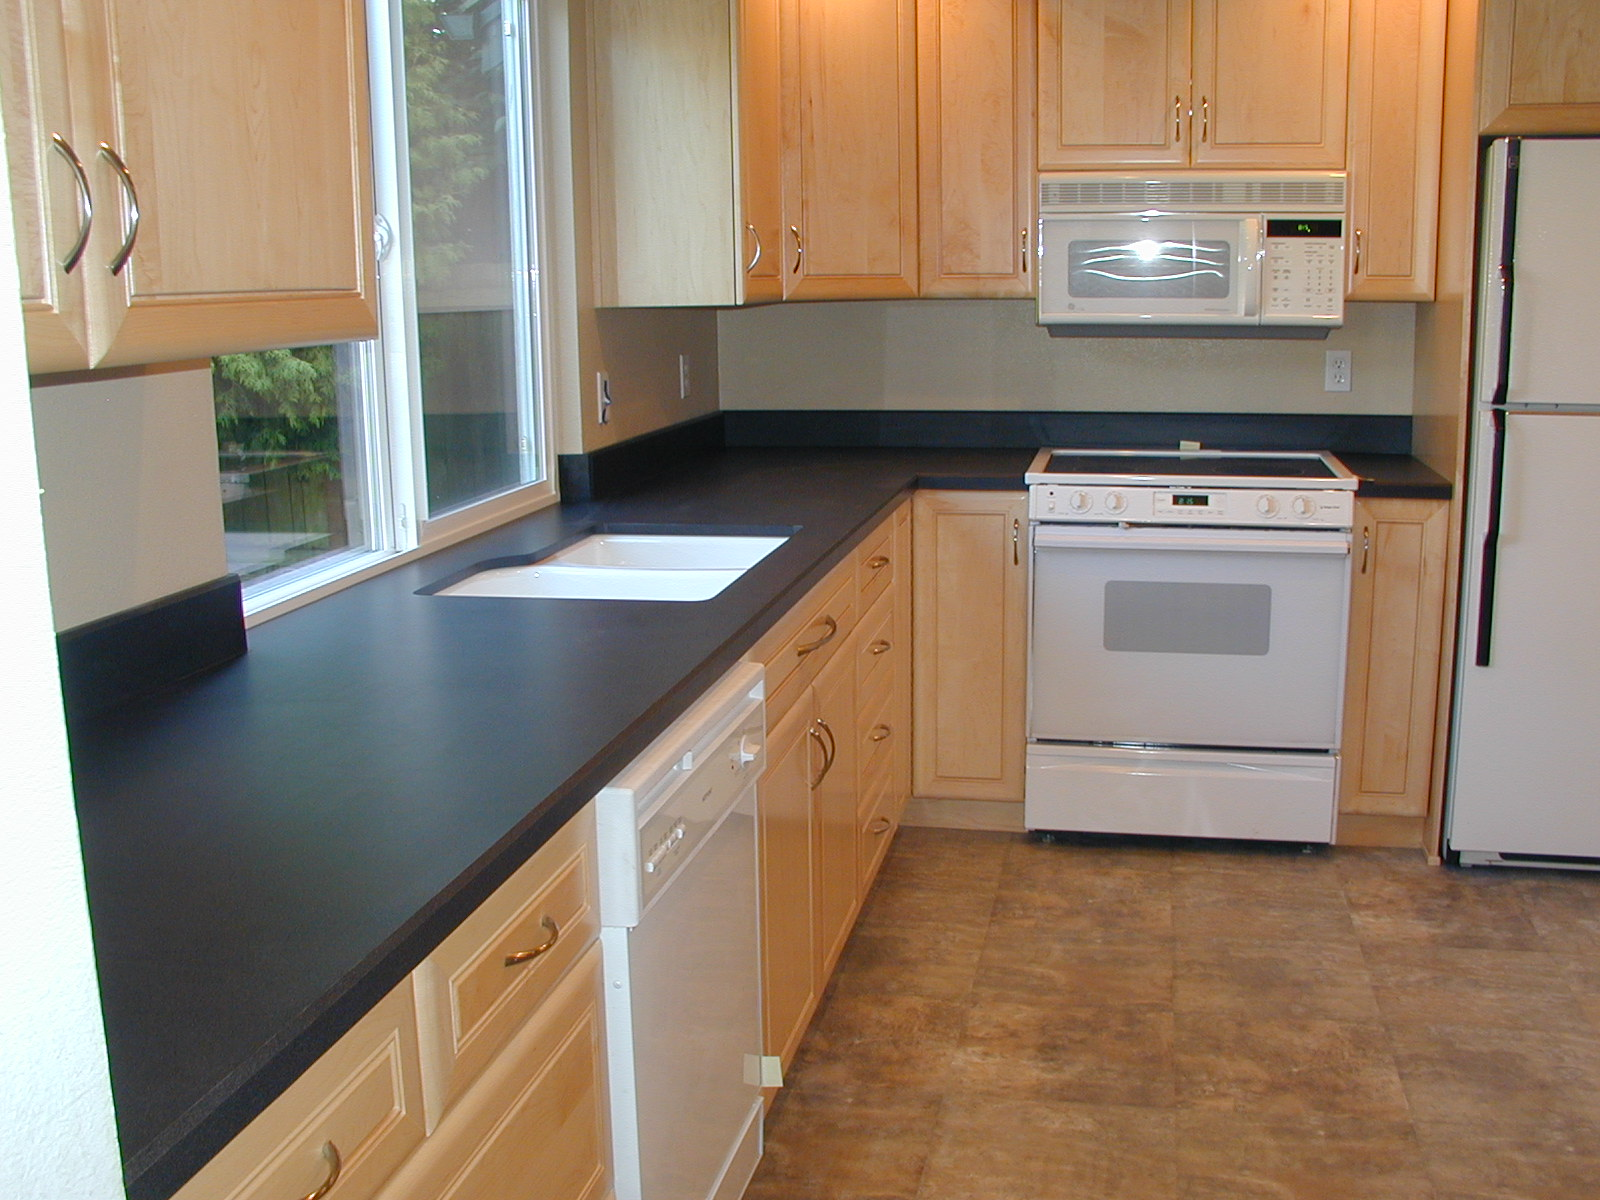 inexpensive kitchen countertop to consider | homesfeed